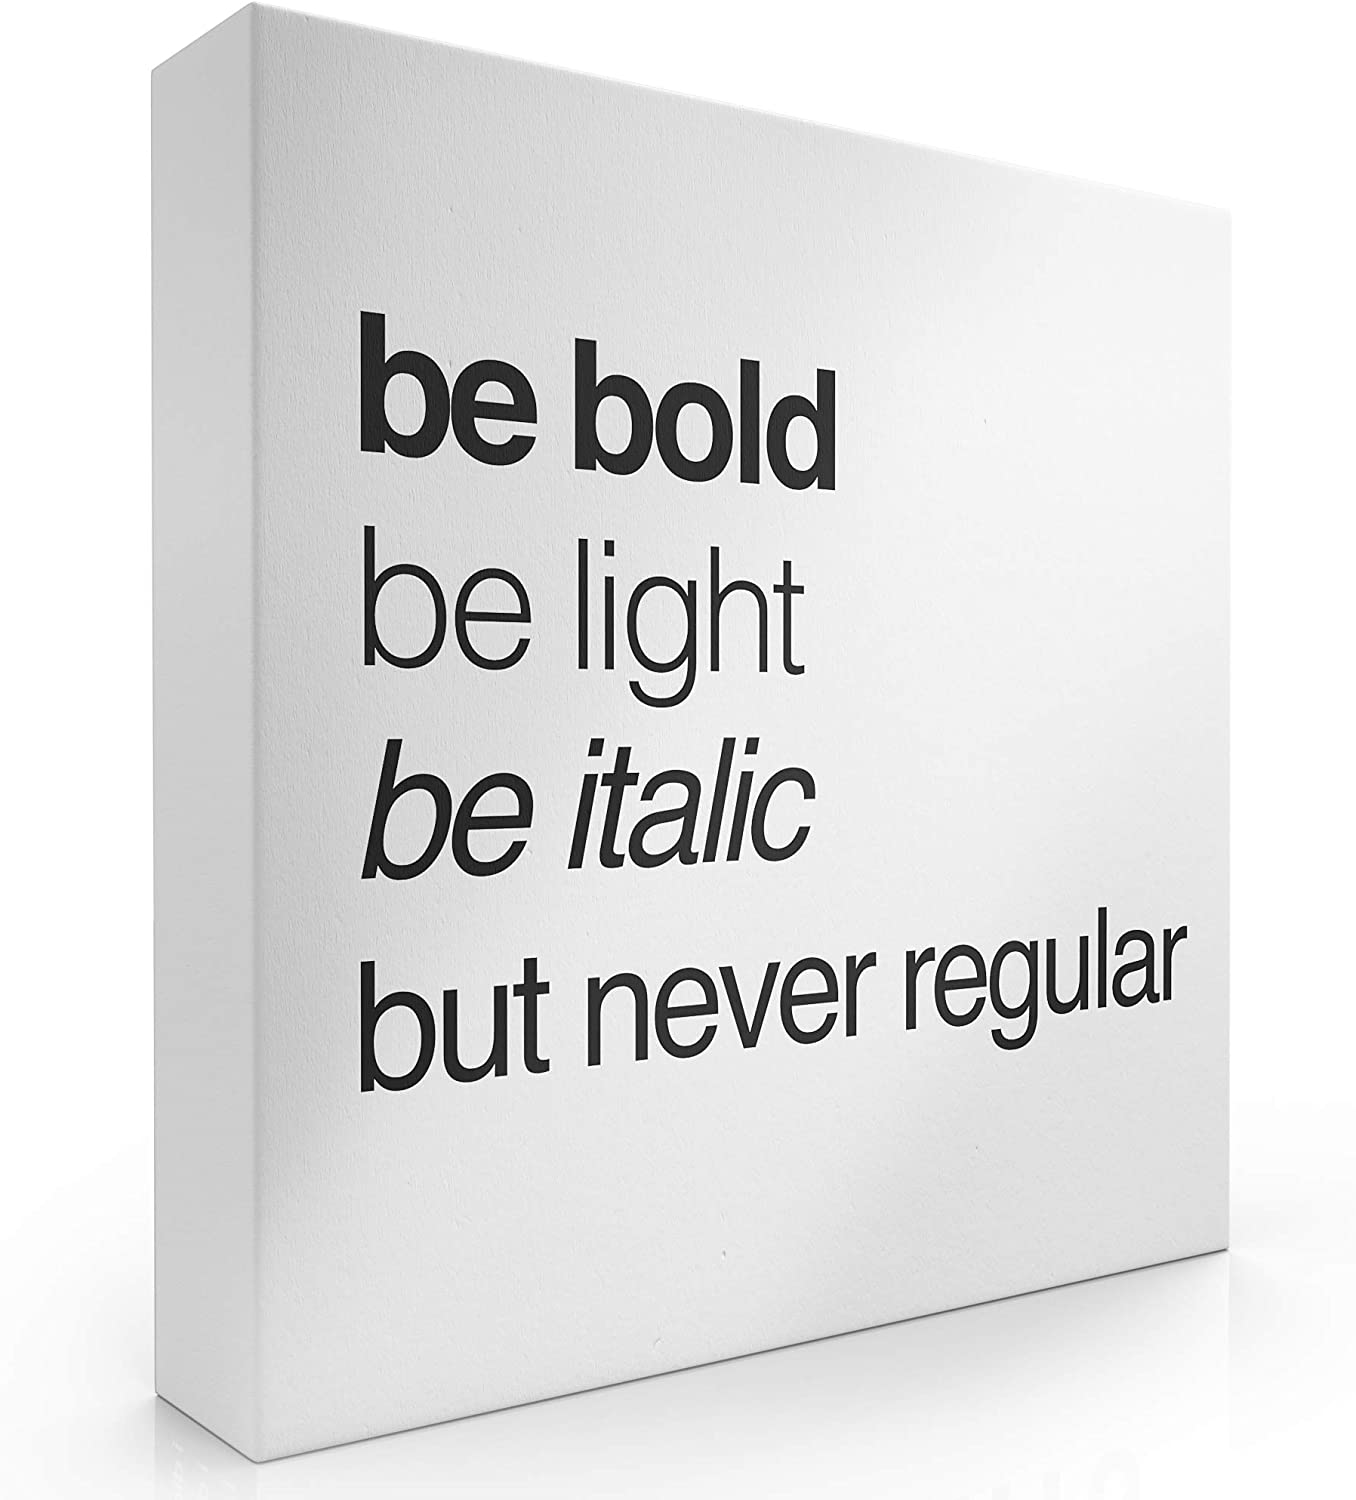 "Modern Market Be Bold Be Light Be Italic But Never Regular Box Sign Modern Funny Quote Home Decor Wooden Sign with Sayings 8"" x 8"""